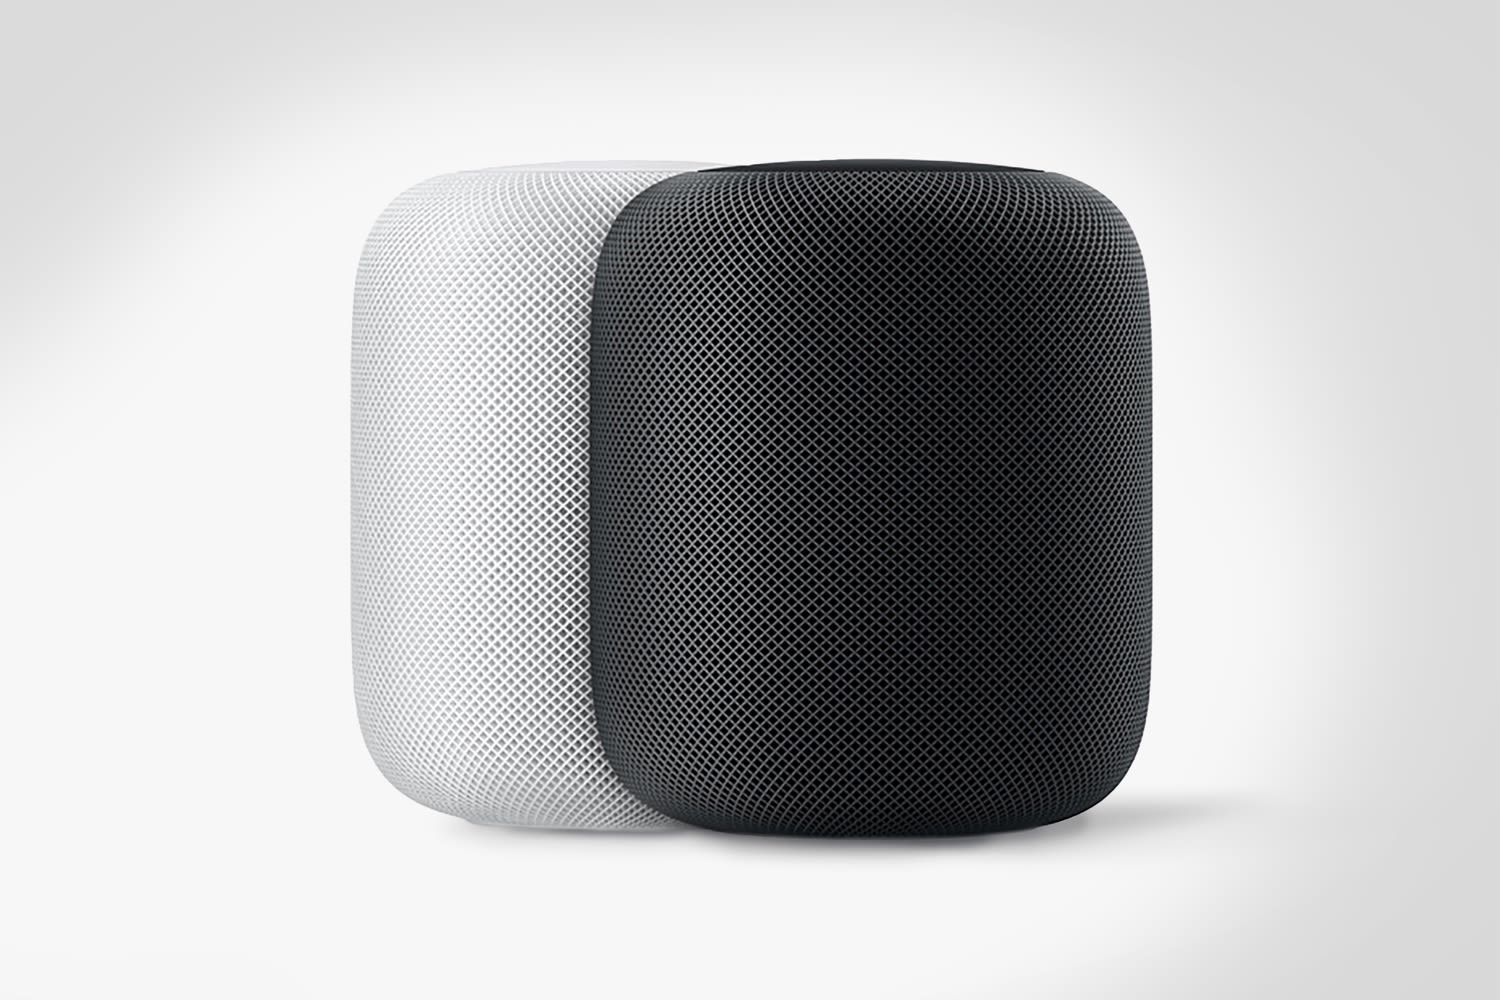 homepod-2-another-upcoming-release-just-after-the-homepod-mini-20201026-1